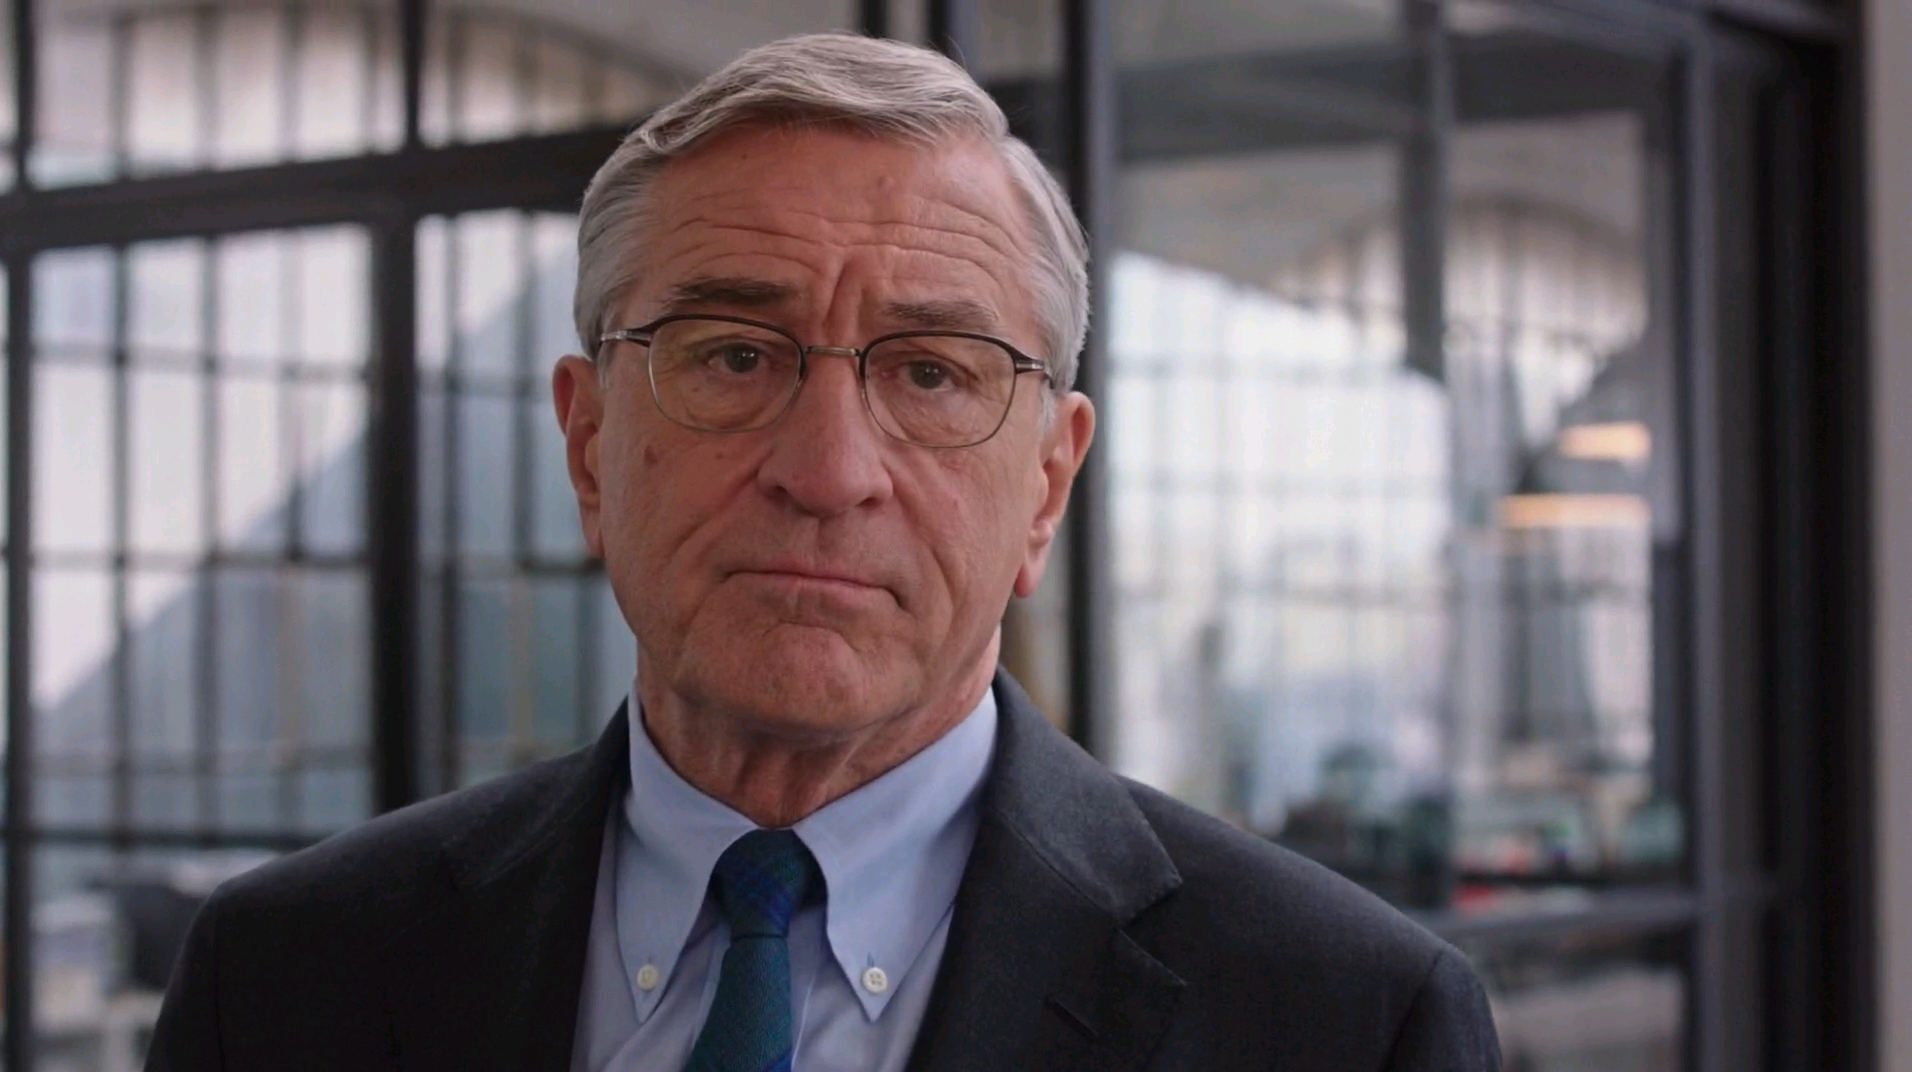 Stajyer - The Intern 2015 ( WEB-DL 1080p ) DuaL TR-ENG - Tek Link